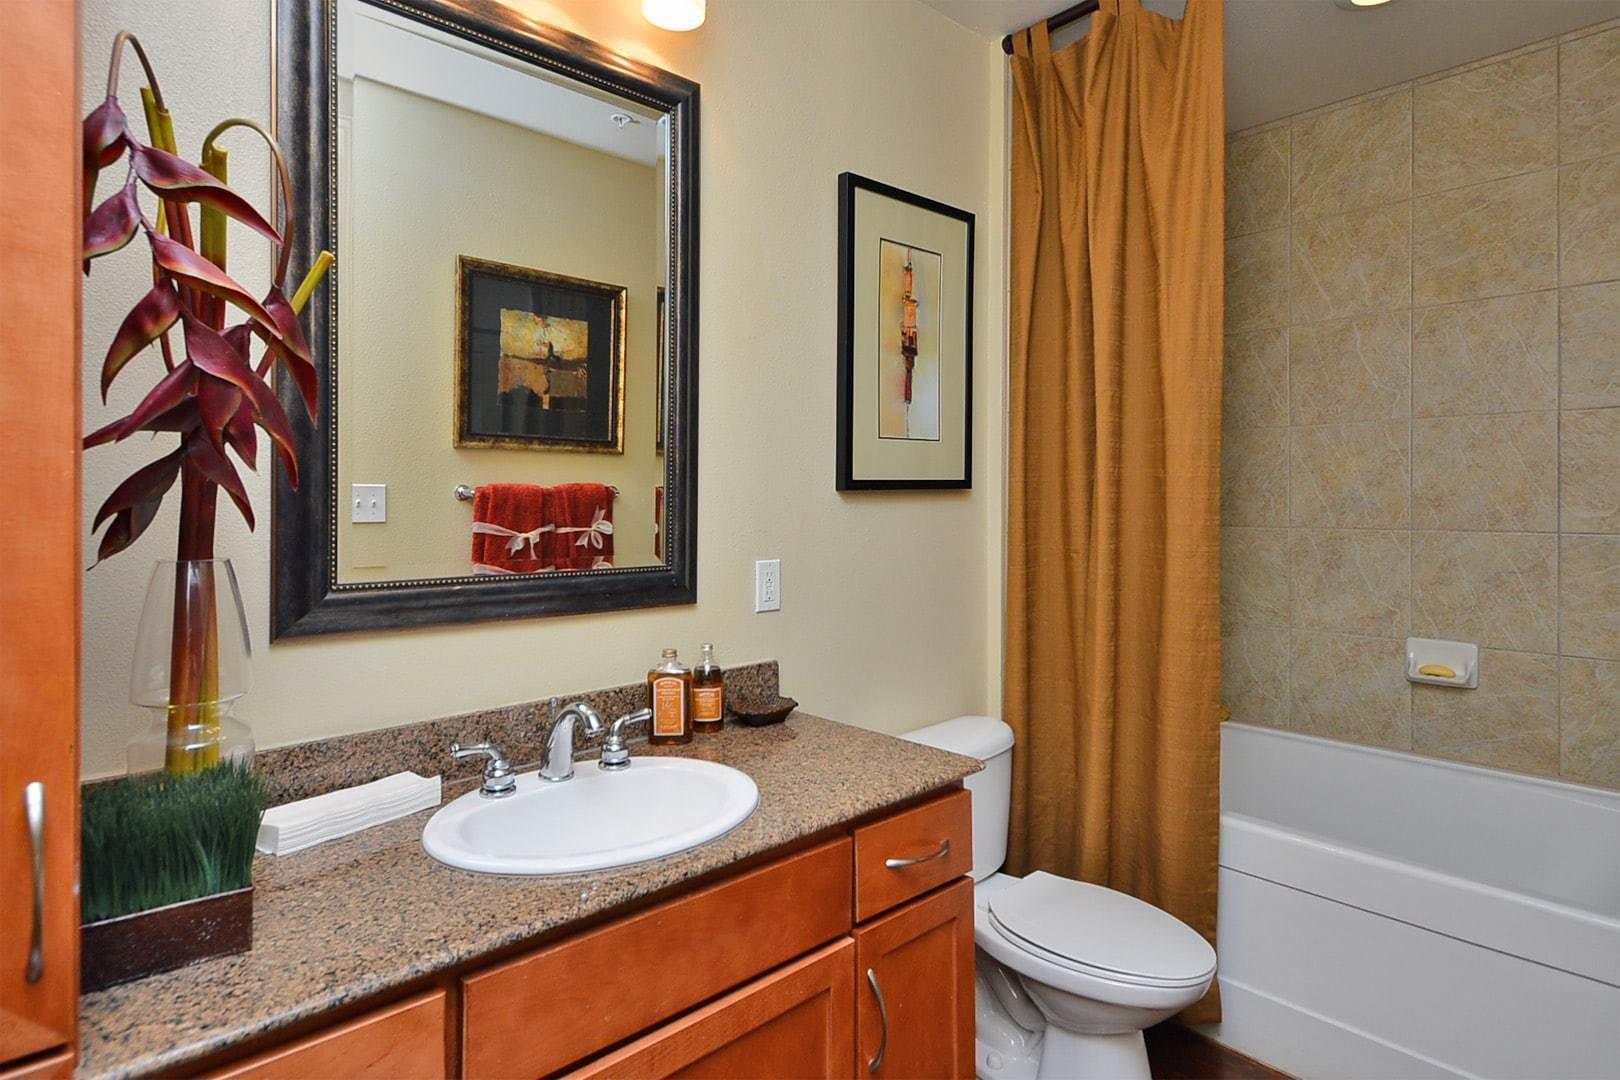 Best Two Bedroom Apartment For Rent In Houston Texas With Pictures Original 1024 x 768